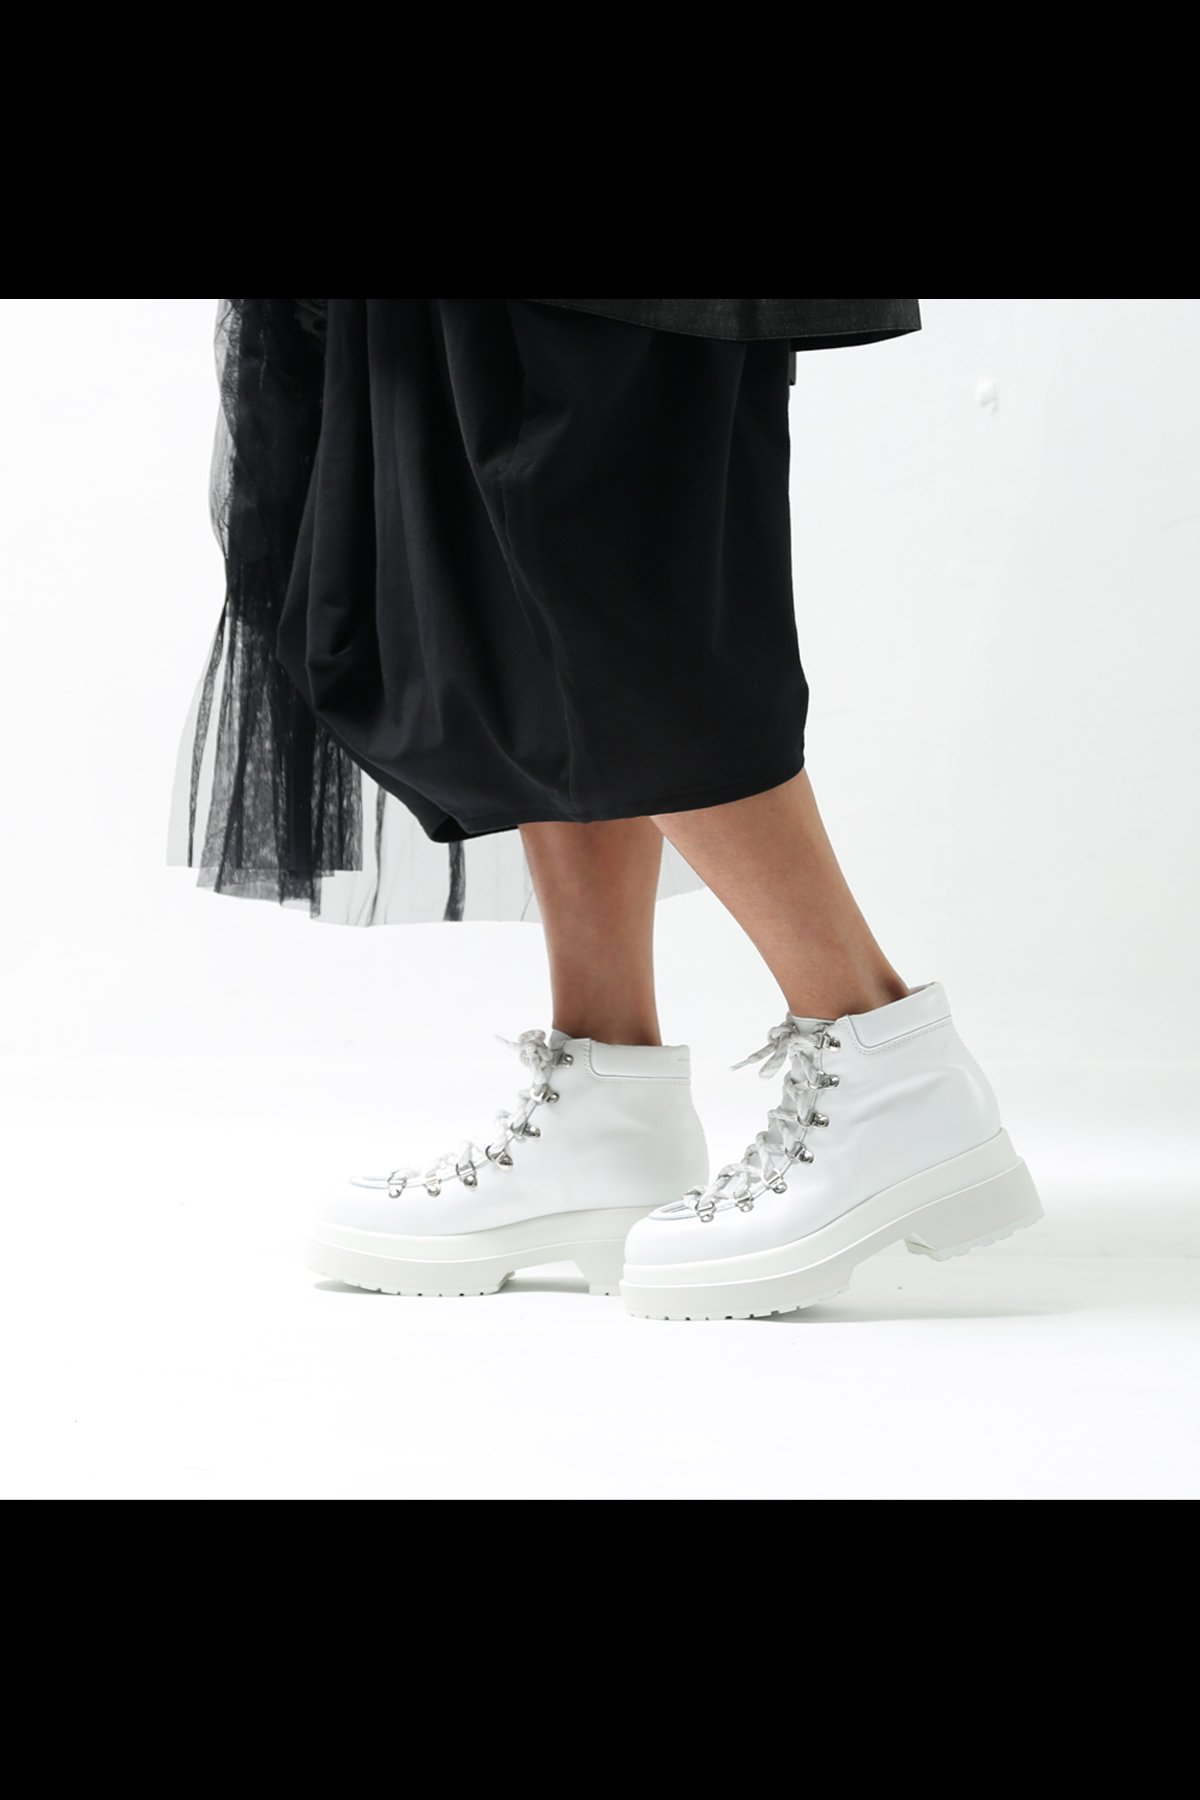 TREKKING ANKLE BOOTS WHITE S59WU0080  P2233